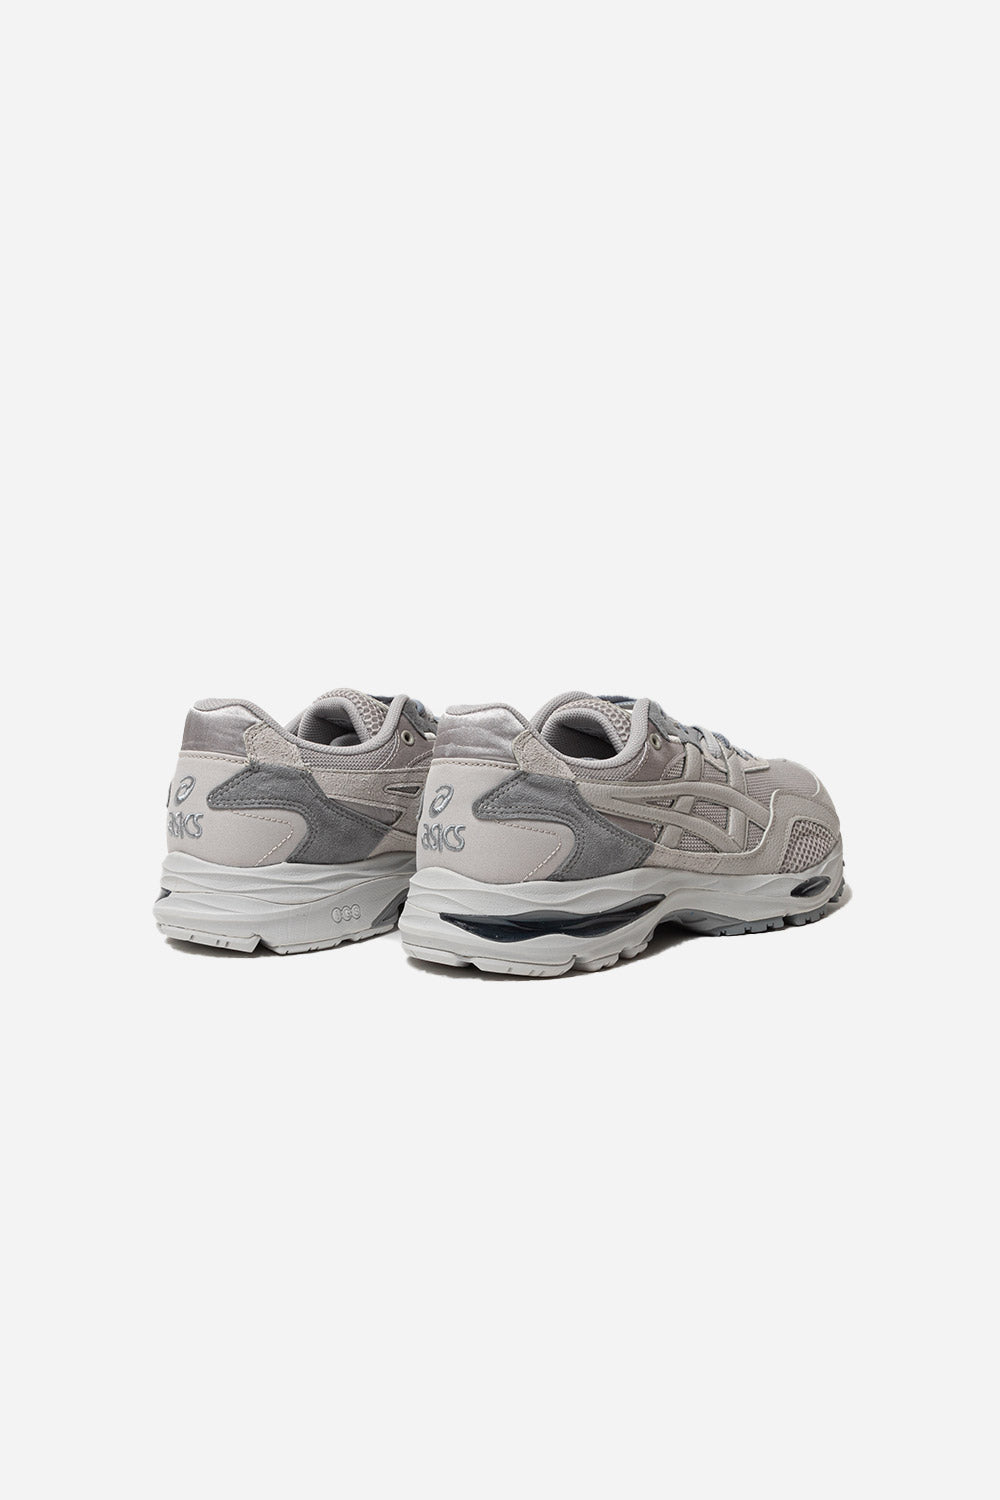 asics-gel-mc-plus-oyster-grey-sheet-rock